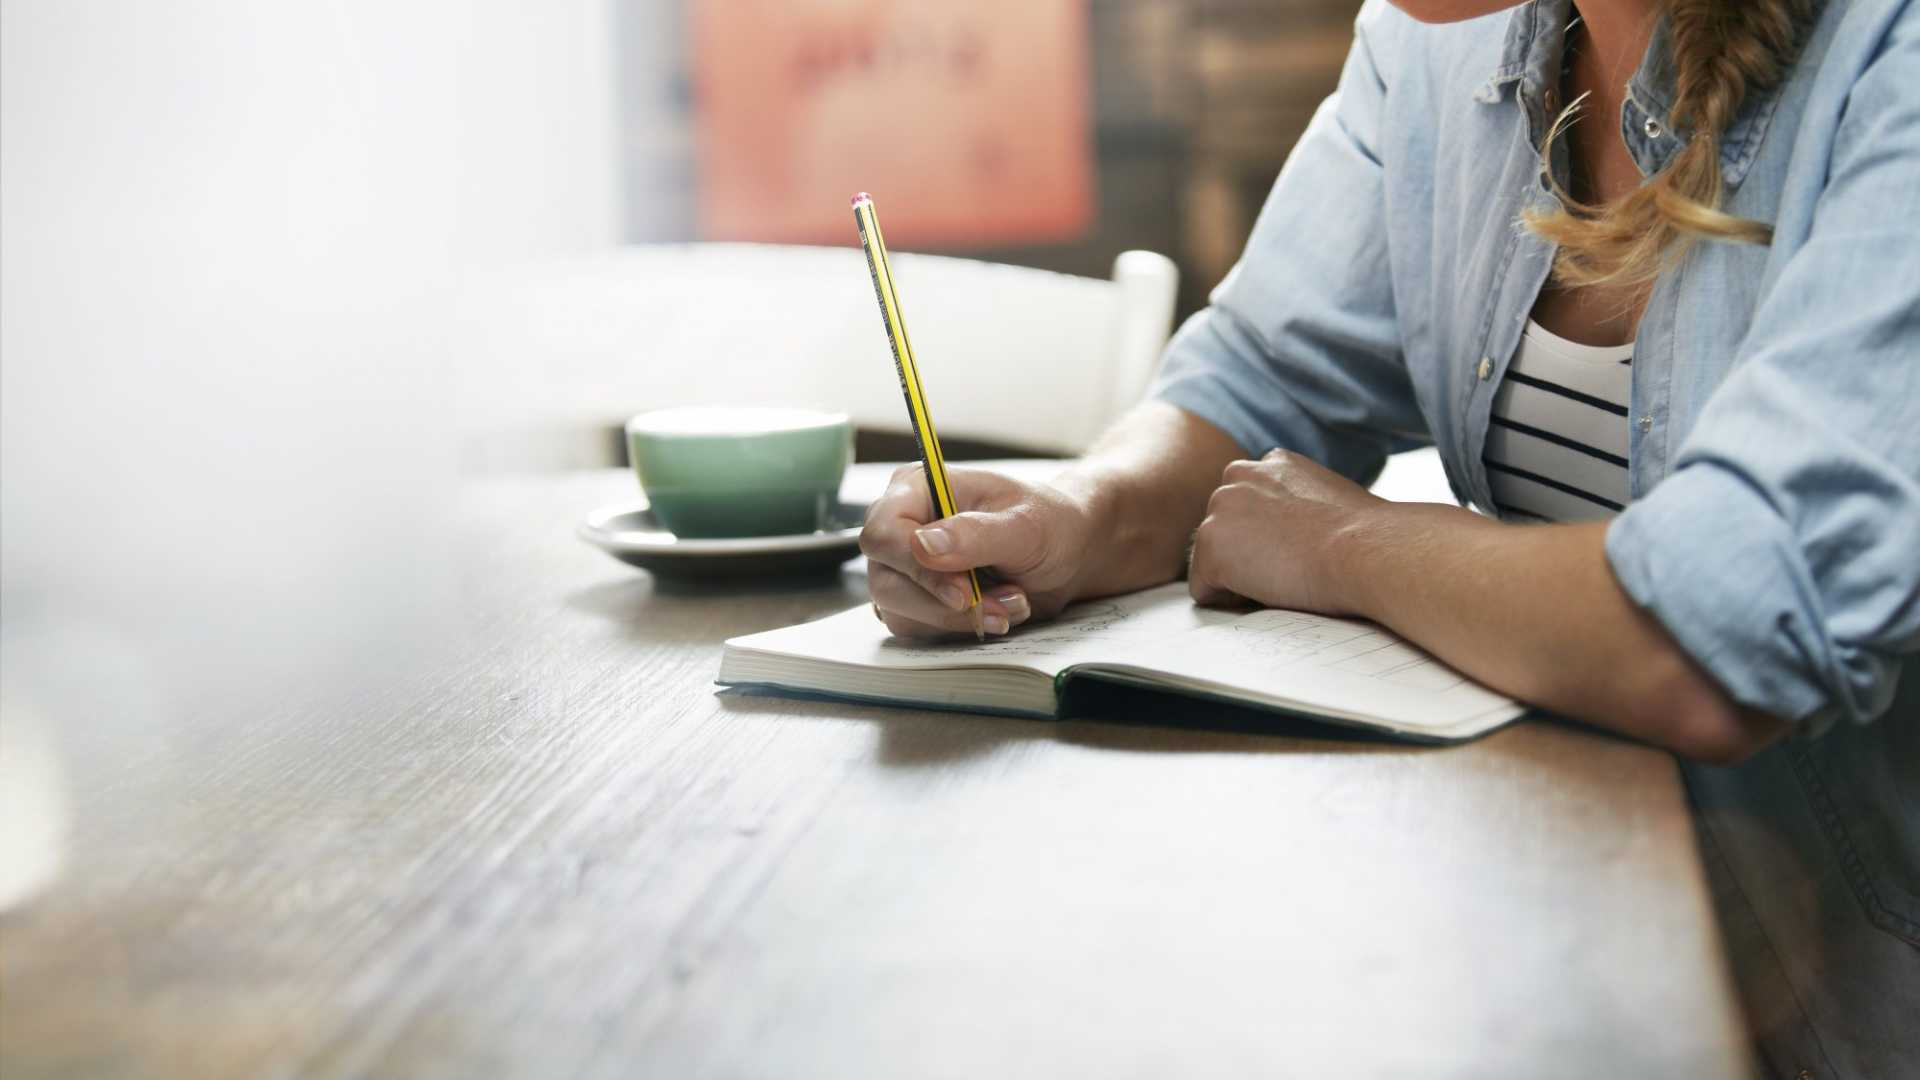 5 Proven Ways to Brainstorm New Writing Ideas